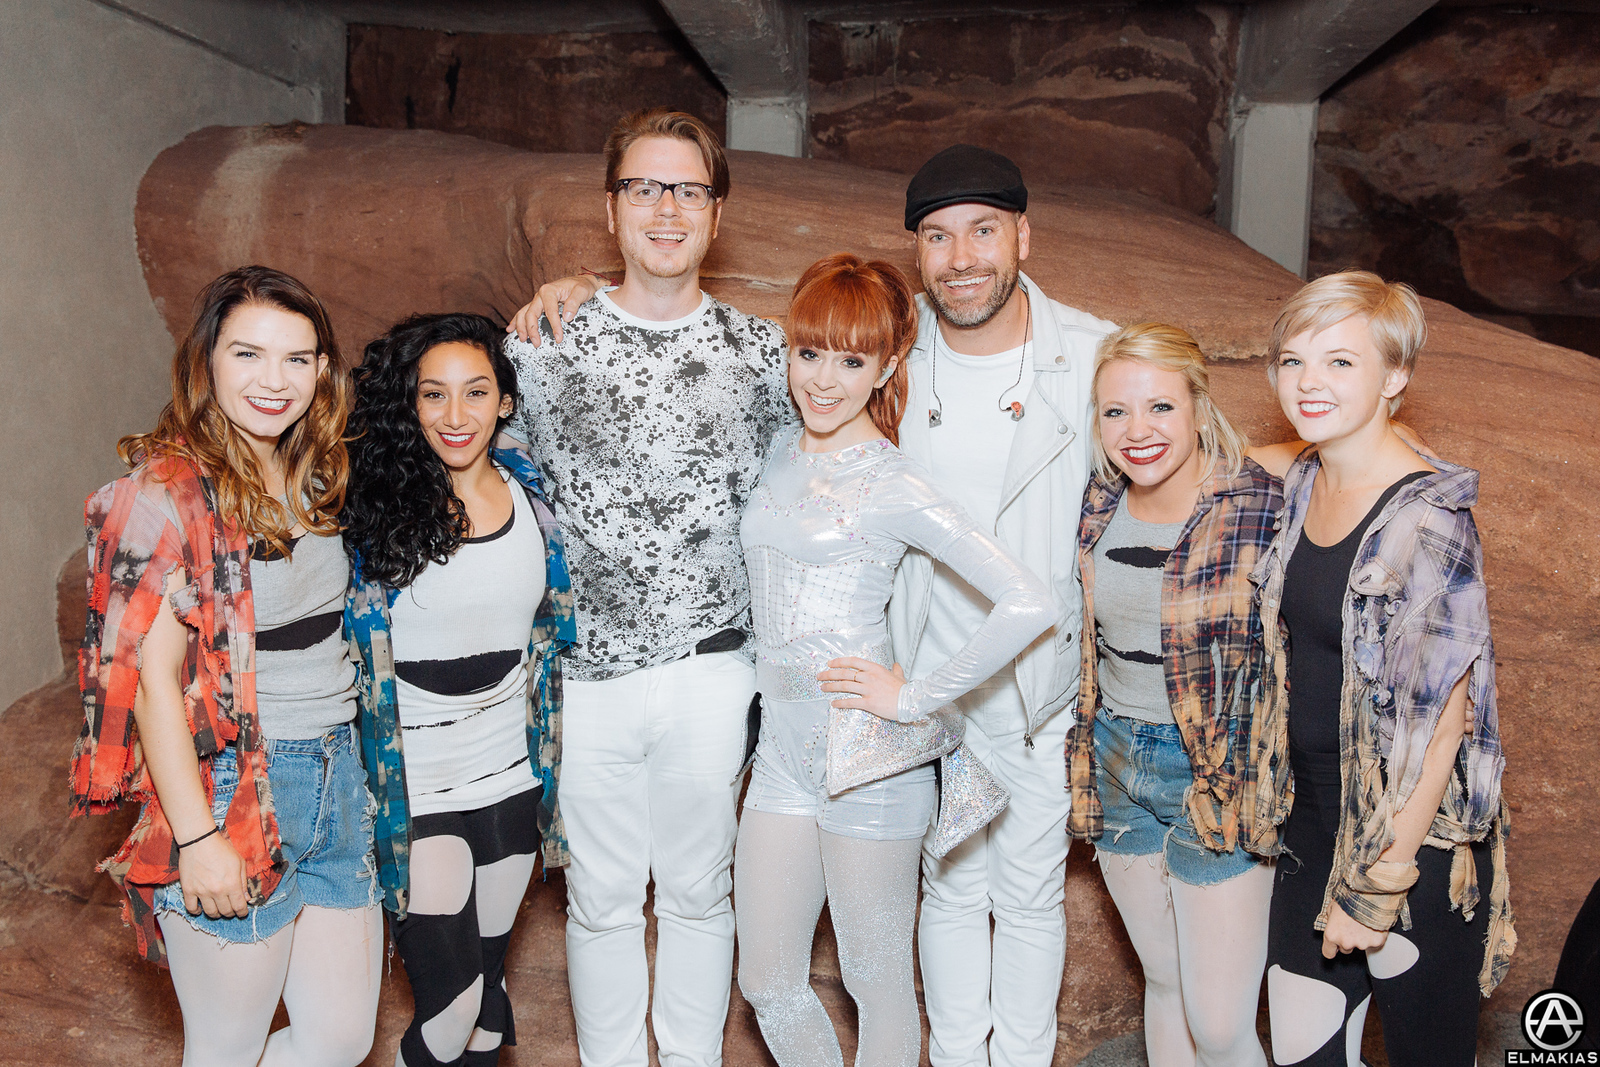 Lindsey Stirling, dancers, and band - all dressed up and ready for stage!